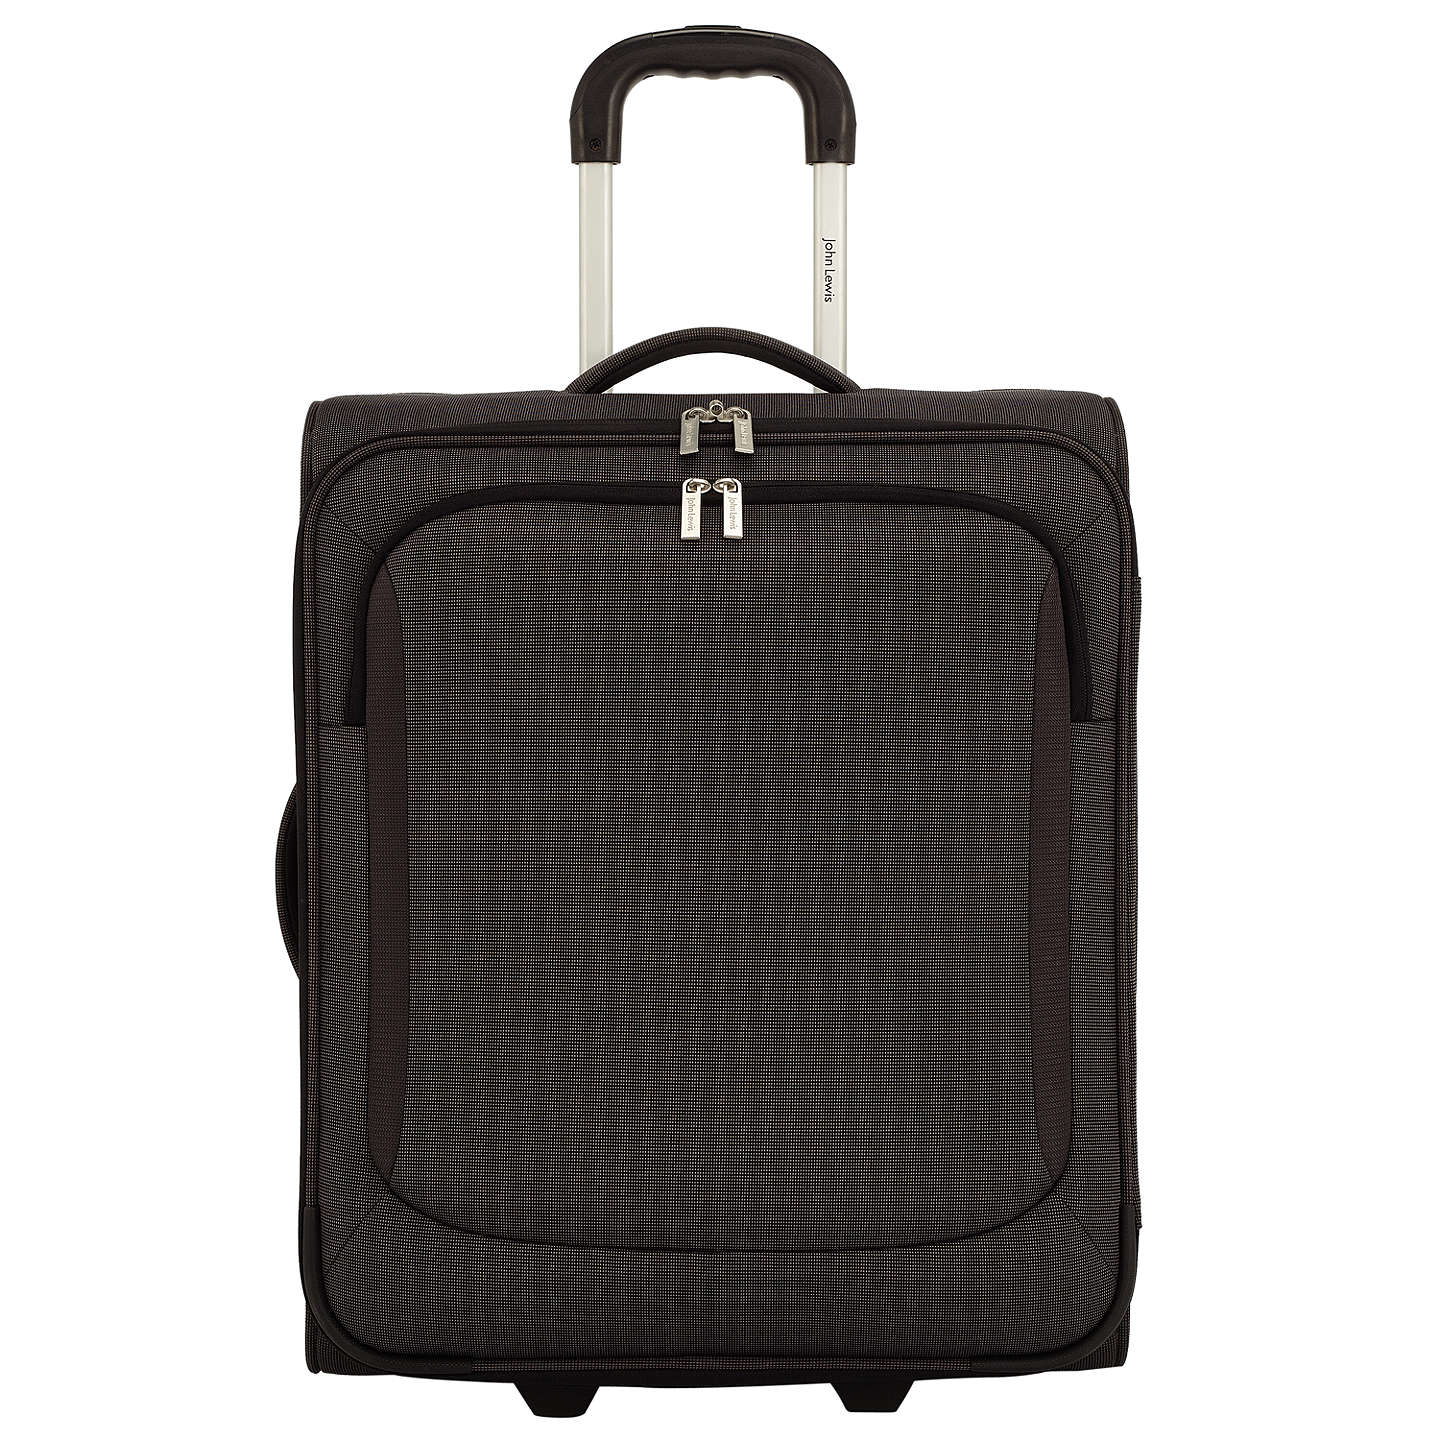 suitcases piece set aerolite en super b easyjet approved bag product luggage on carry bags hand suitcase lightweight maximum for ryanair wheel second holdall cabins cabin black max